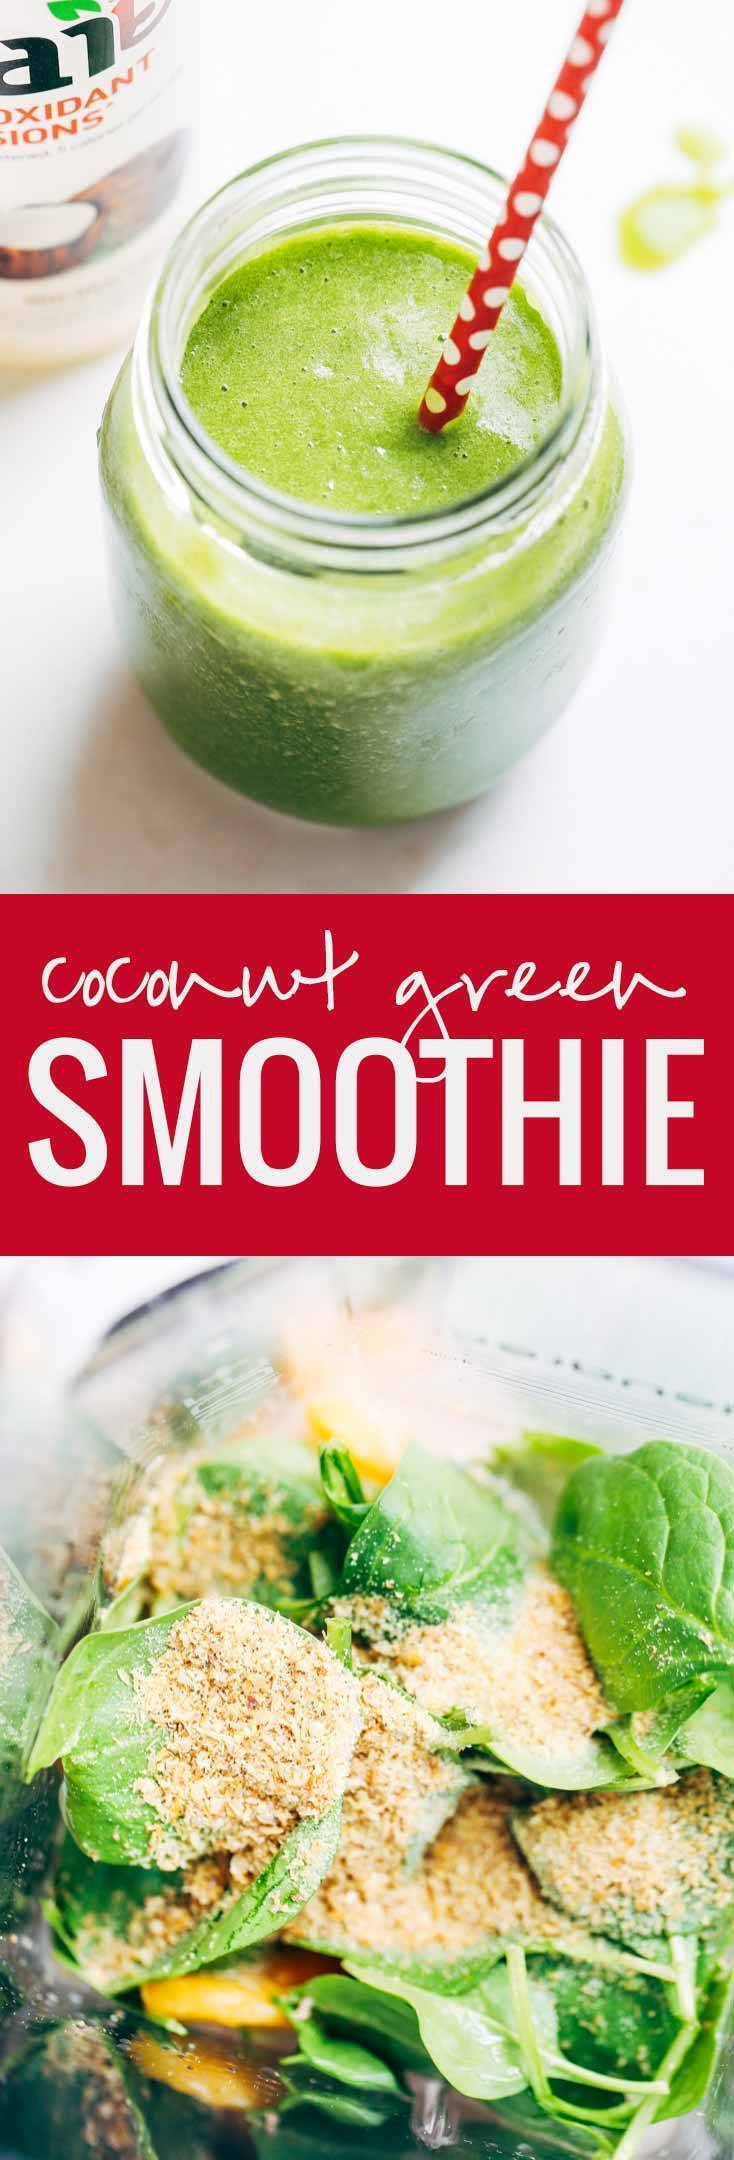 Coconut-Green-Smoothie1